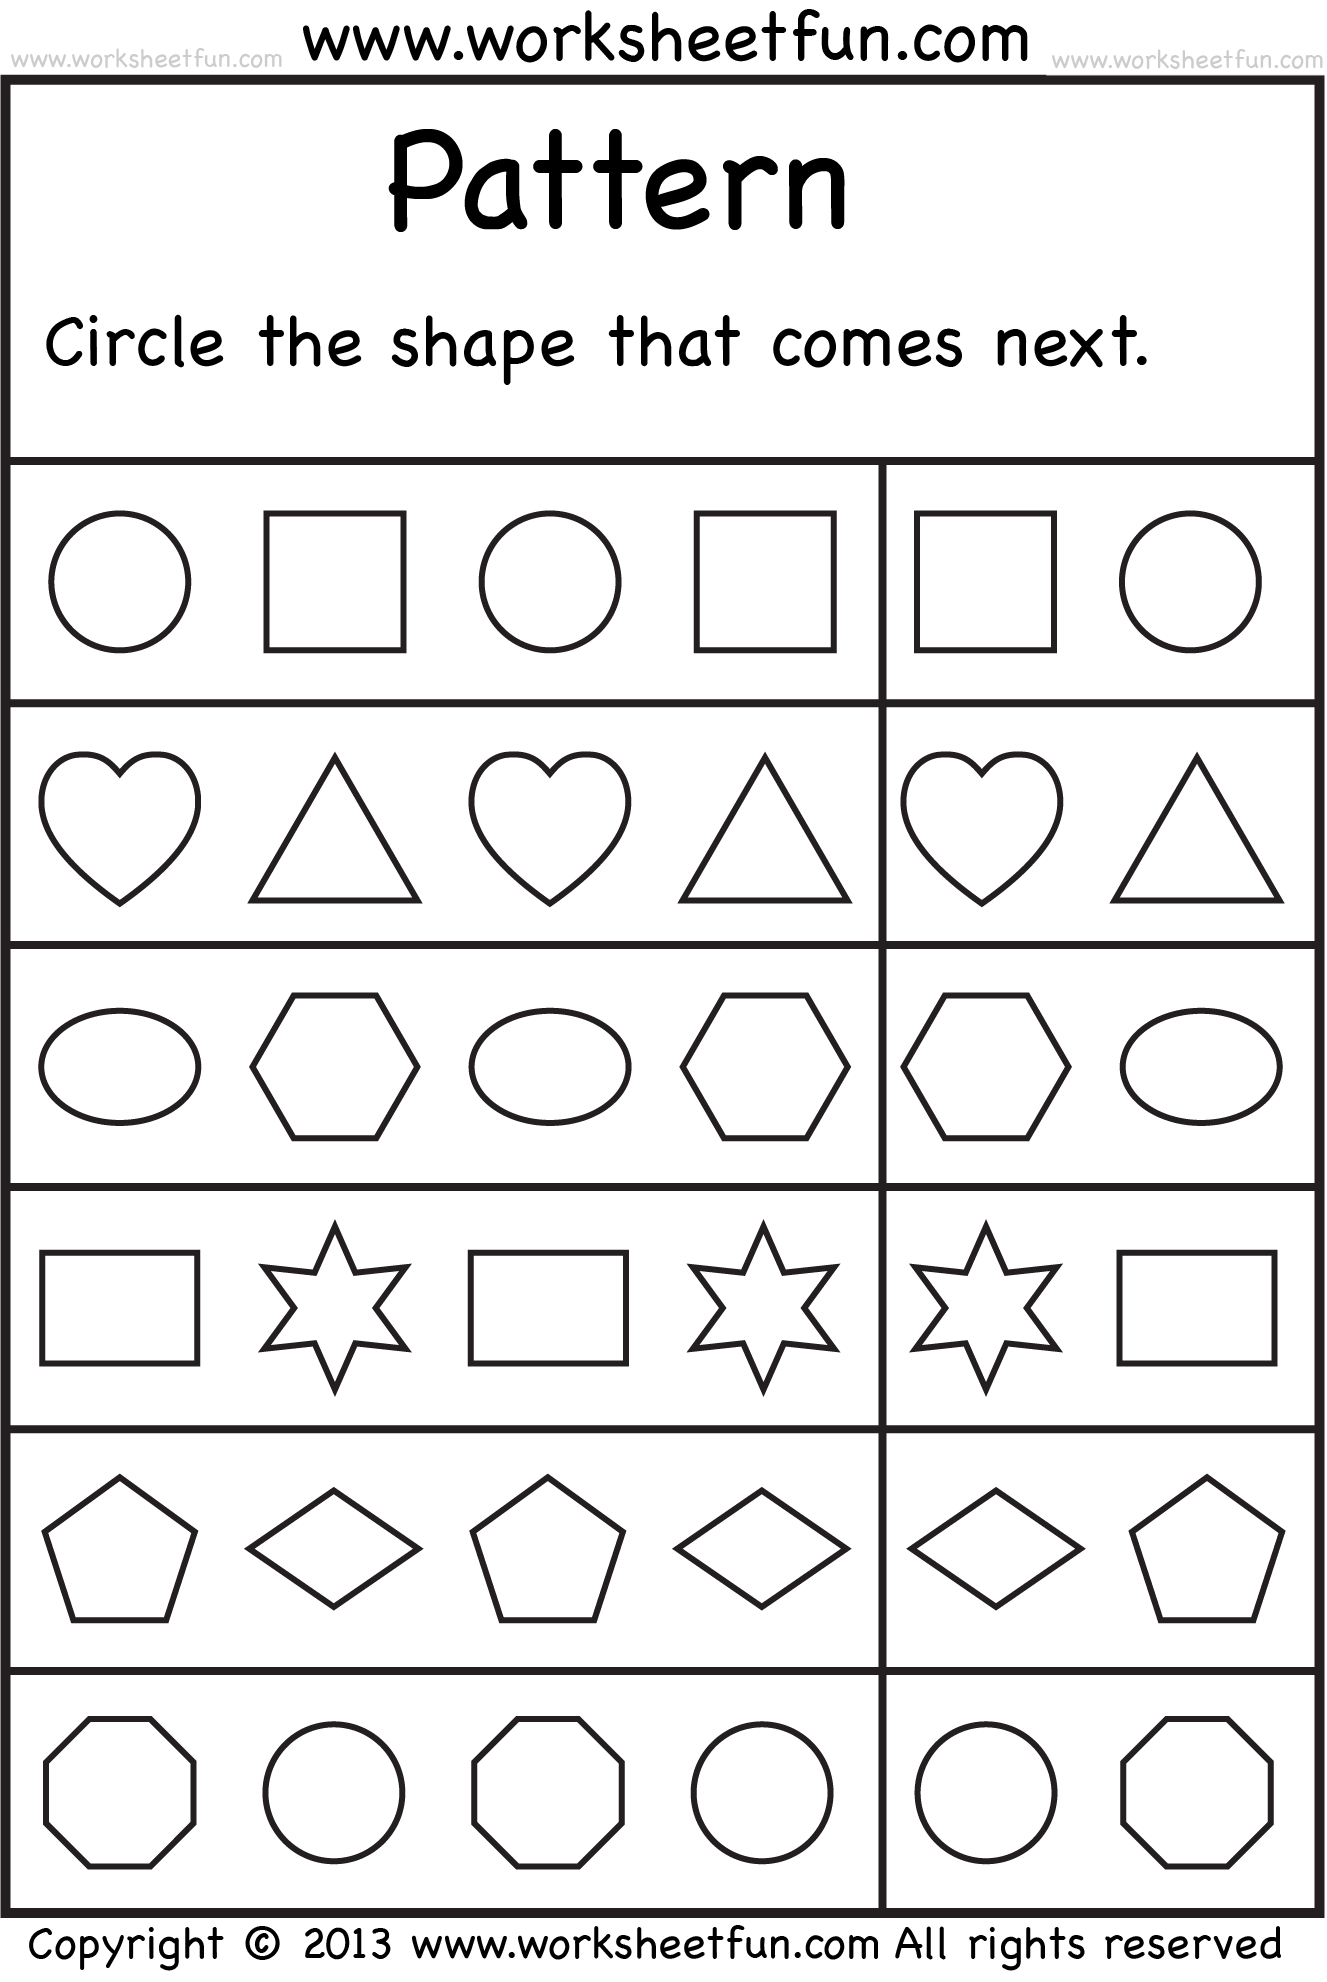 FREE Printable Worksheets Worksheetfun FREE Printable – Math Kindergarten Worksheets Free